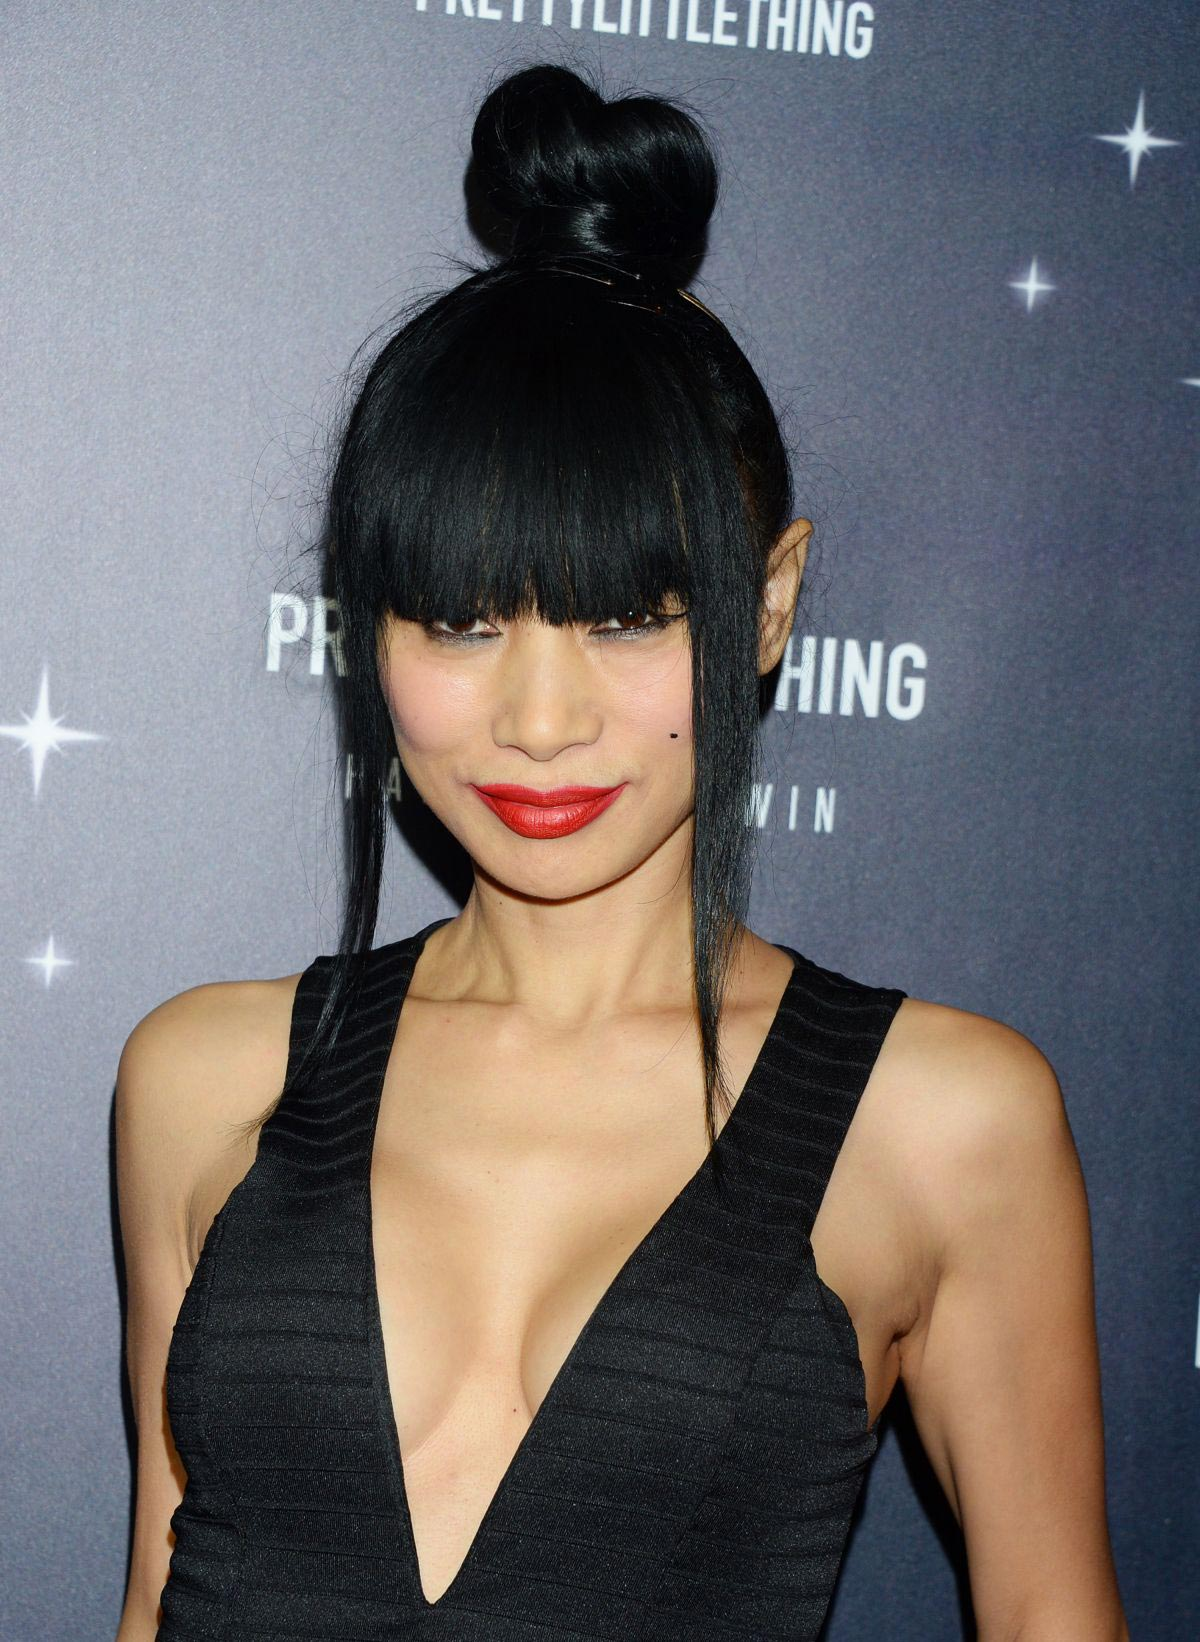 Bai Ling at PrettyLittleThing Starring Hailey Baldwin Event in Los Angeles 2018/11/05 1